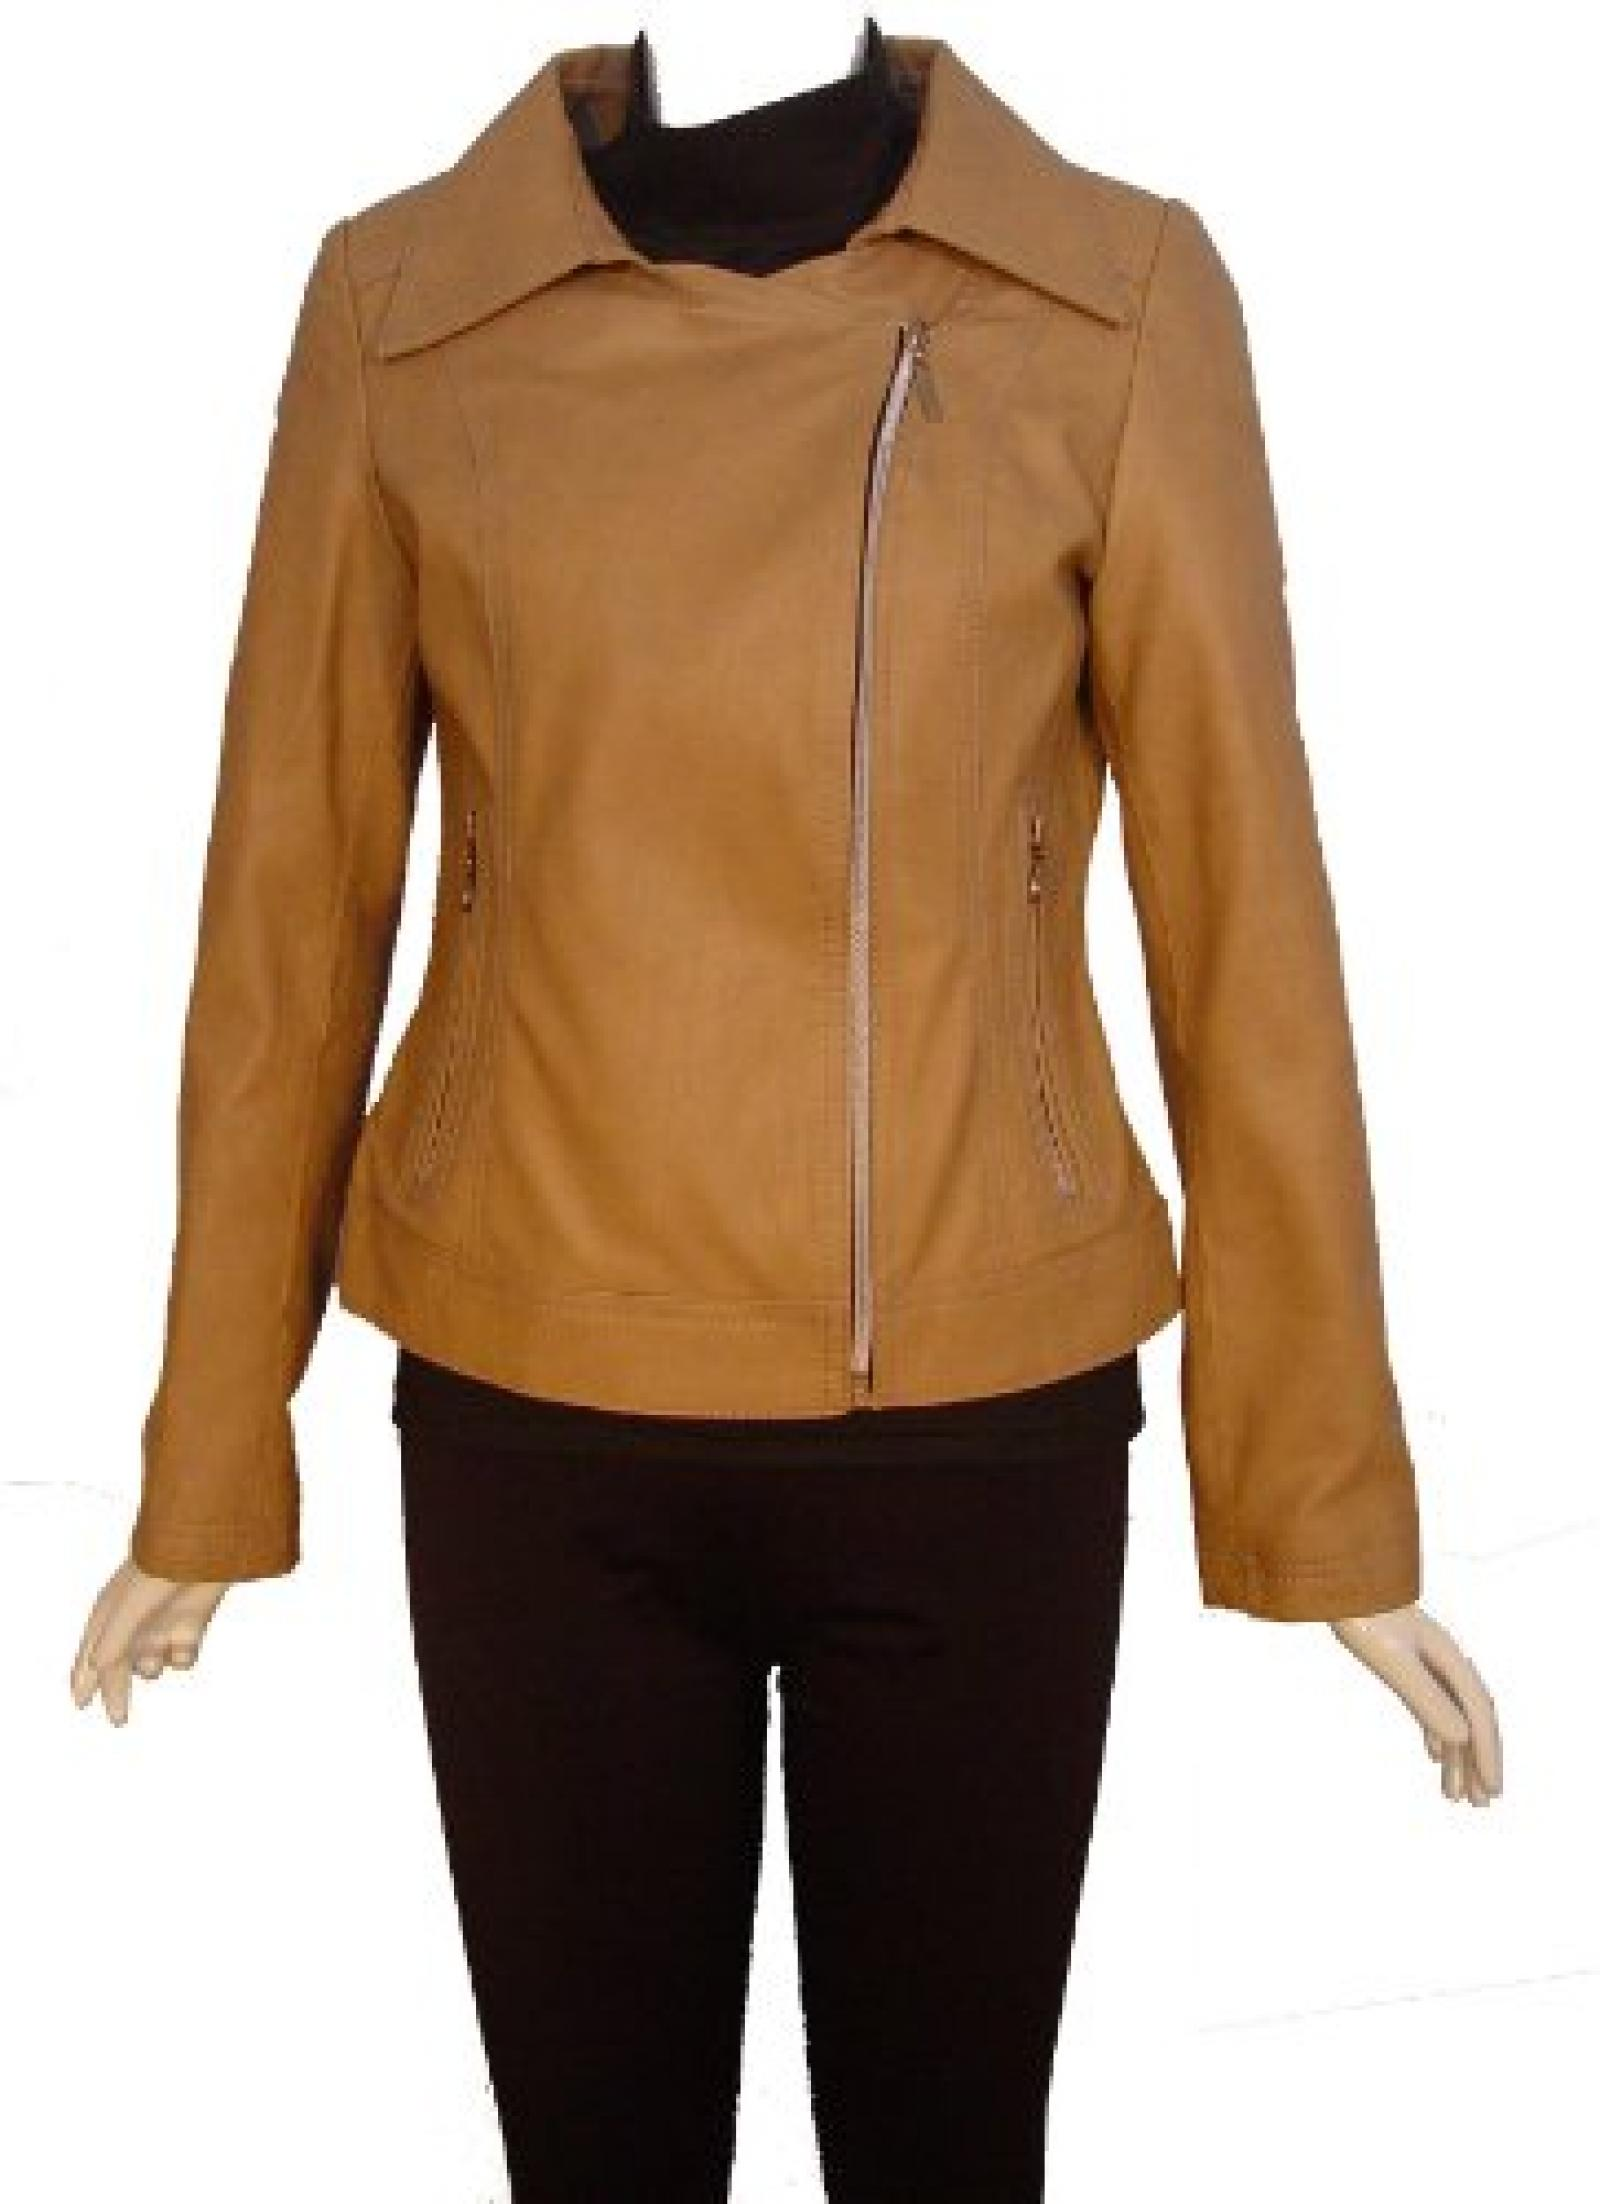 Paccilo FREE tailoring Women 4094 Leather Moto Jacket Open Bottom Zip Front